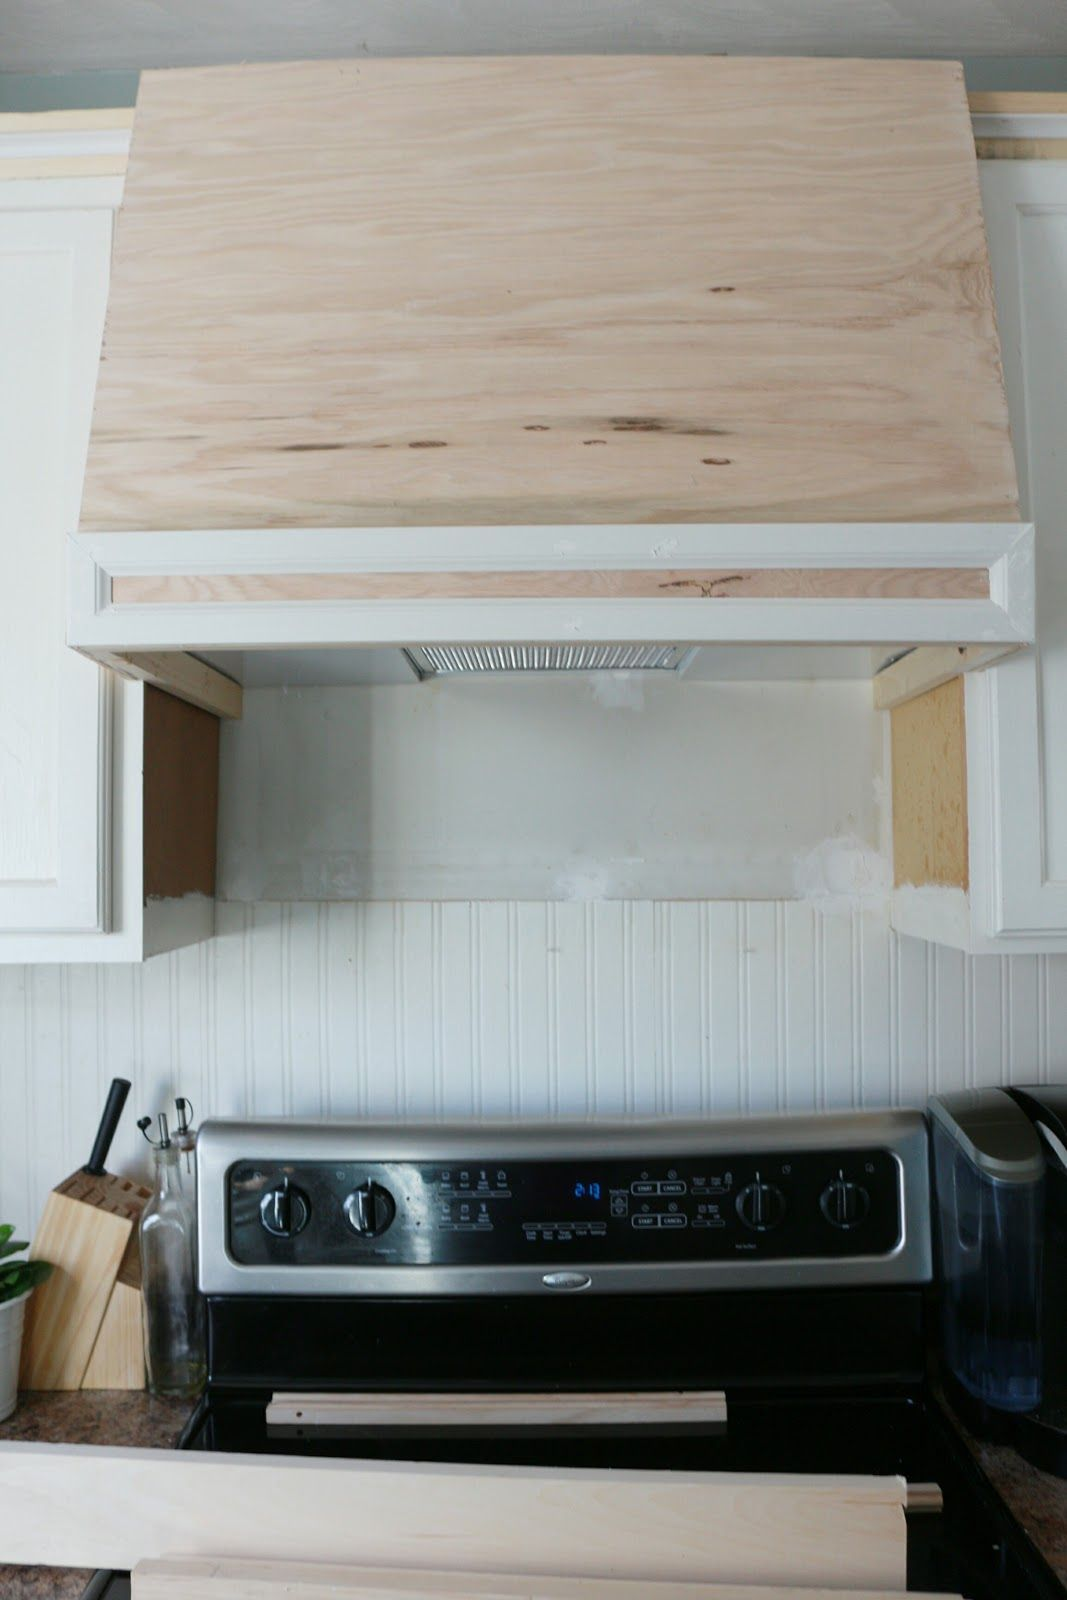 My Diy Kitchen How I Built A Rangehood Over An Existing Cabinet Made By Carli Diy Kitchen Renovation Diy Kitchen Remodel Diy Kitchen